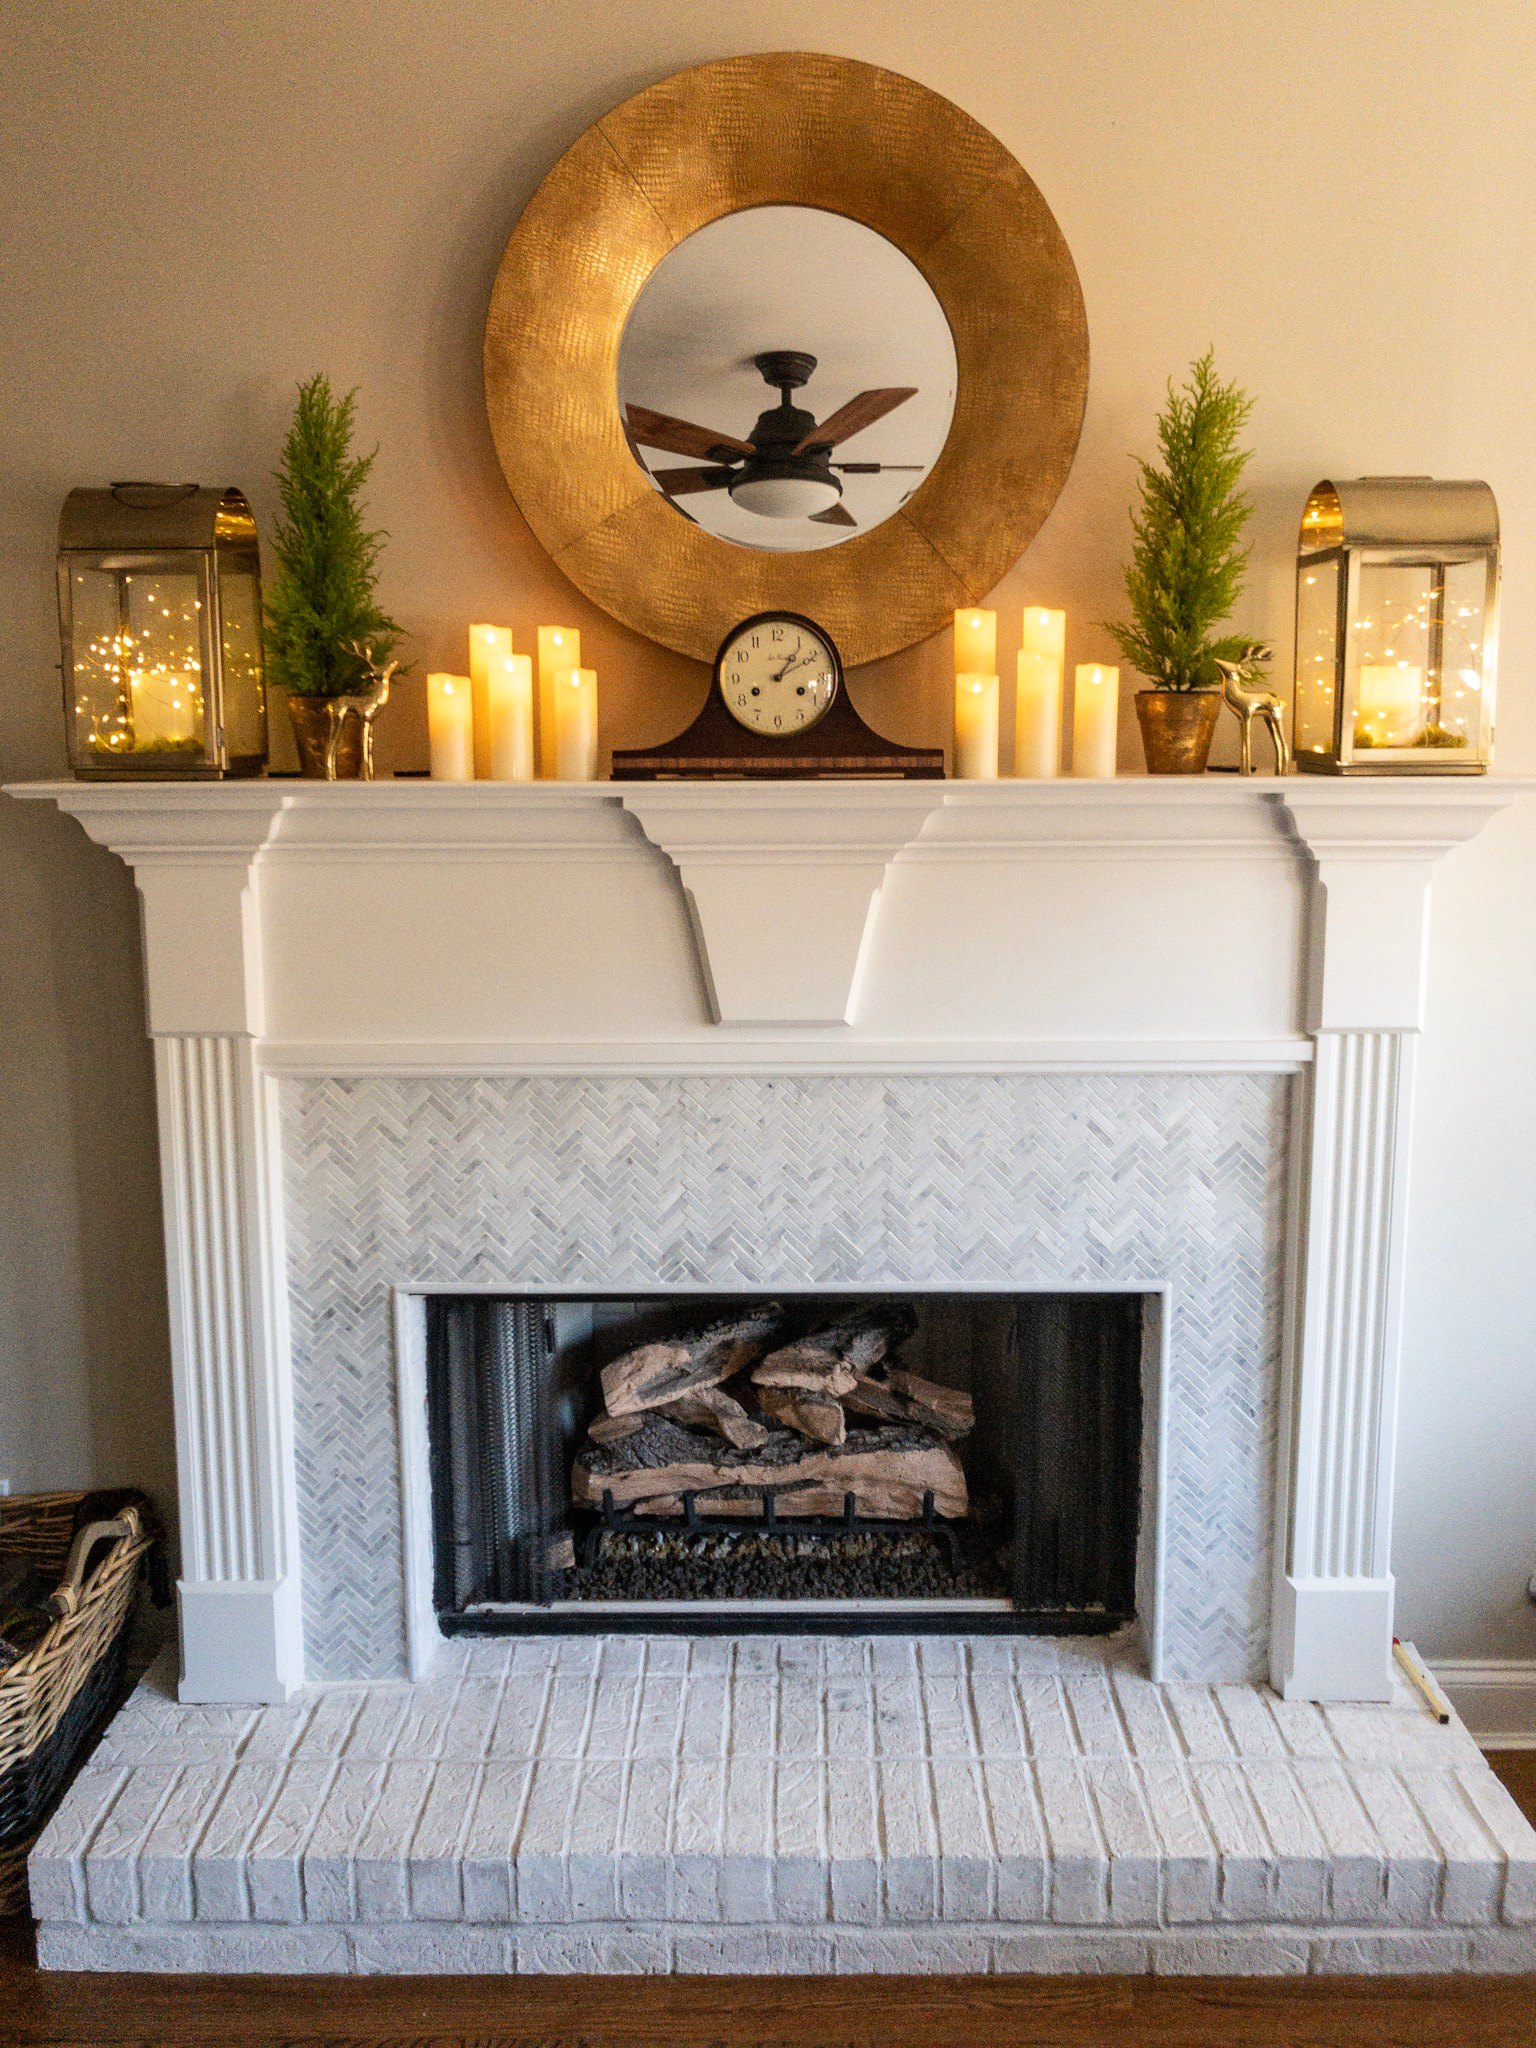 How To Add Herringbone Marble Tile To A Fireplace Southern Hospitality